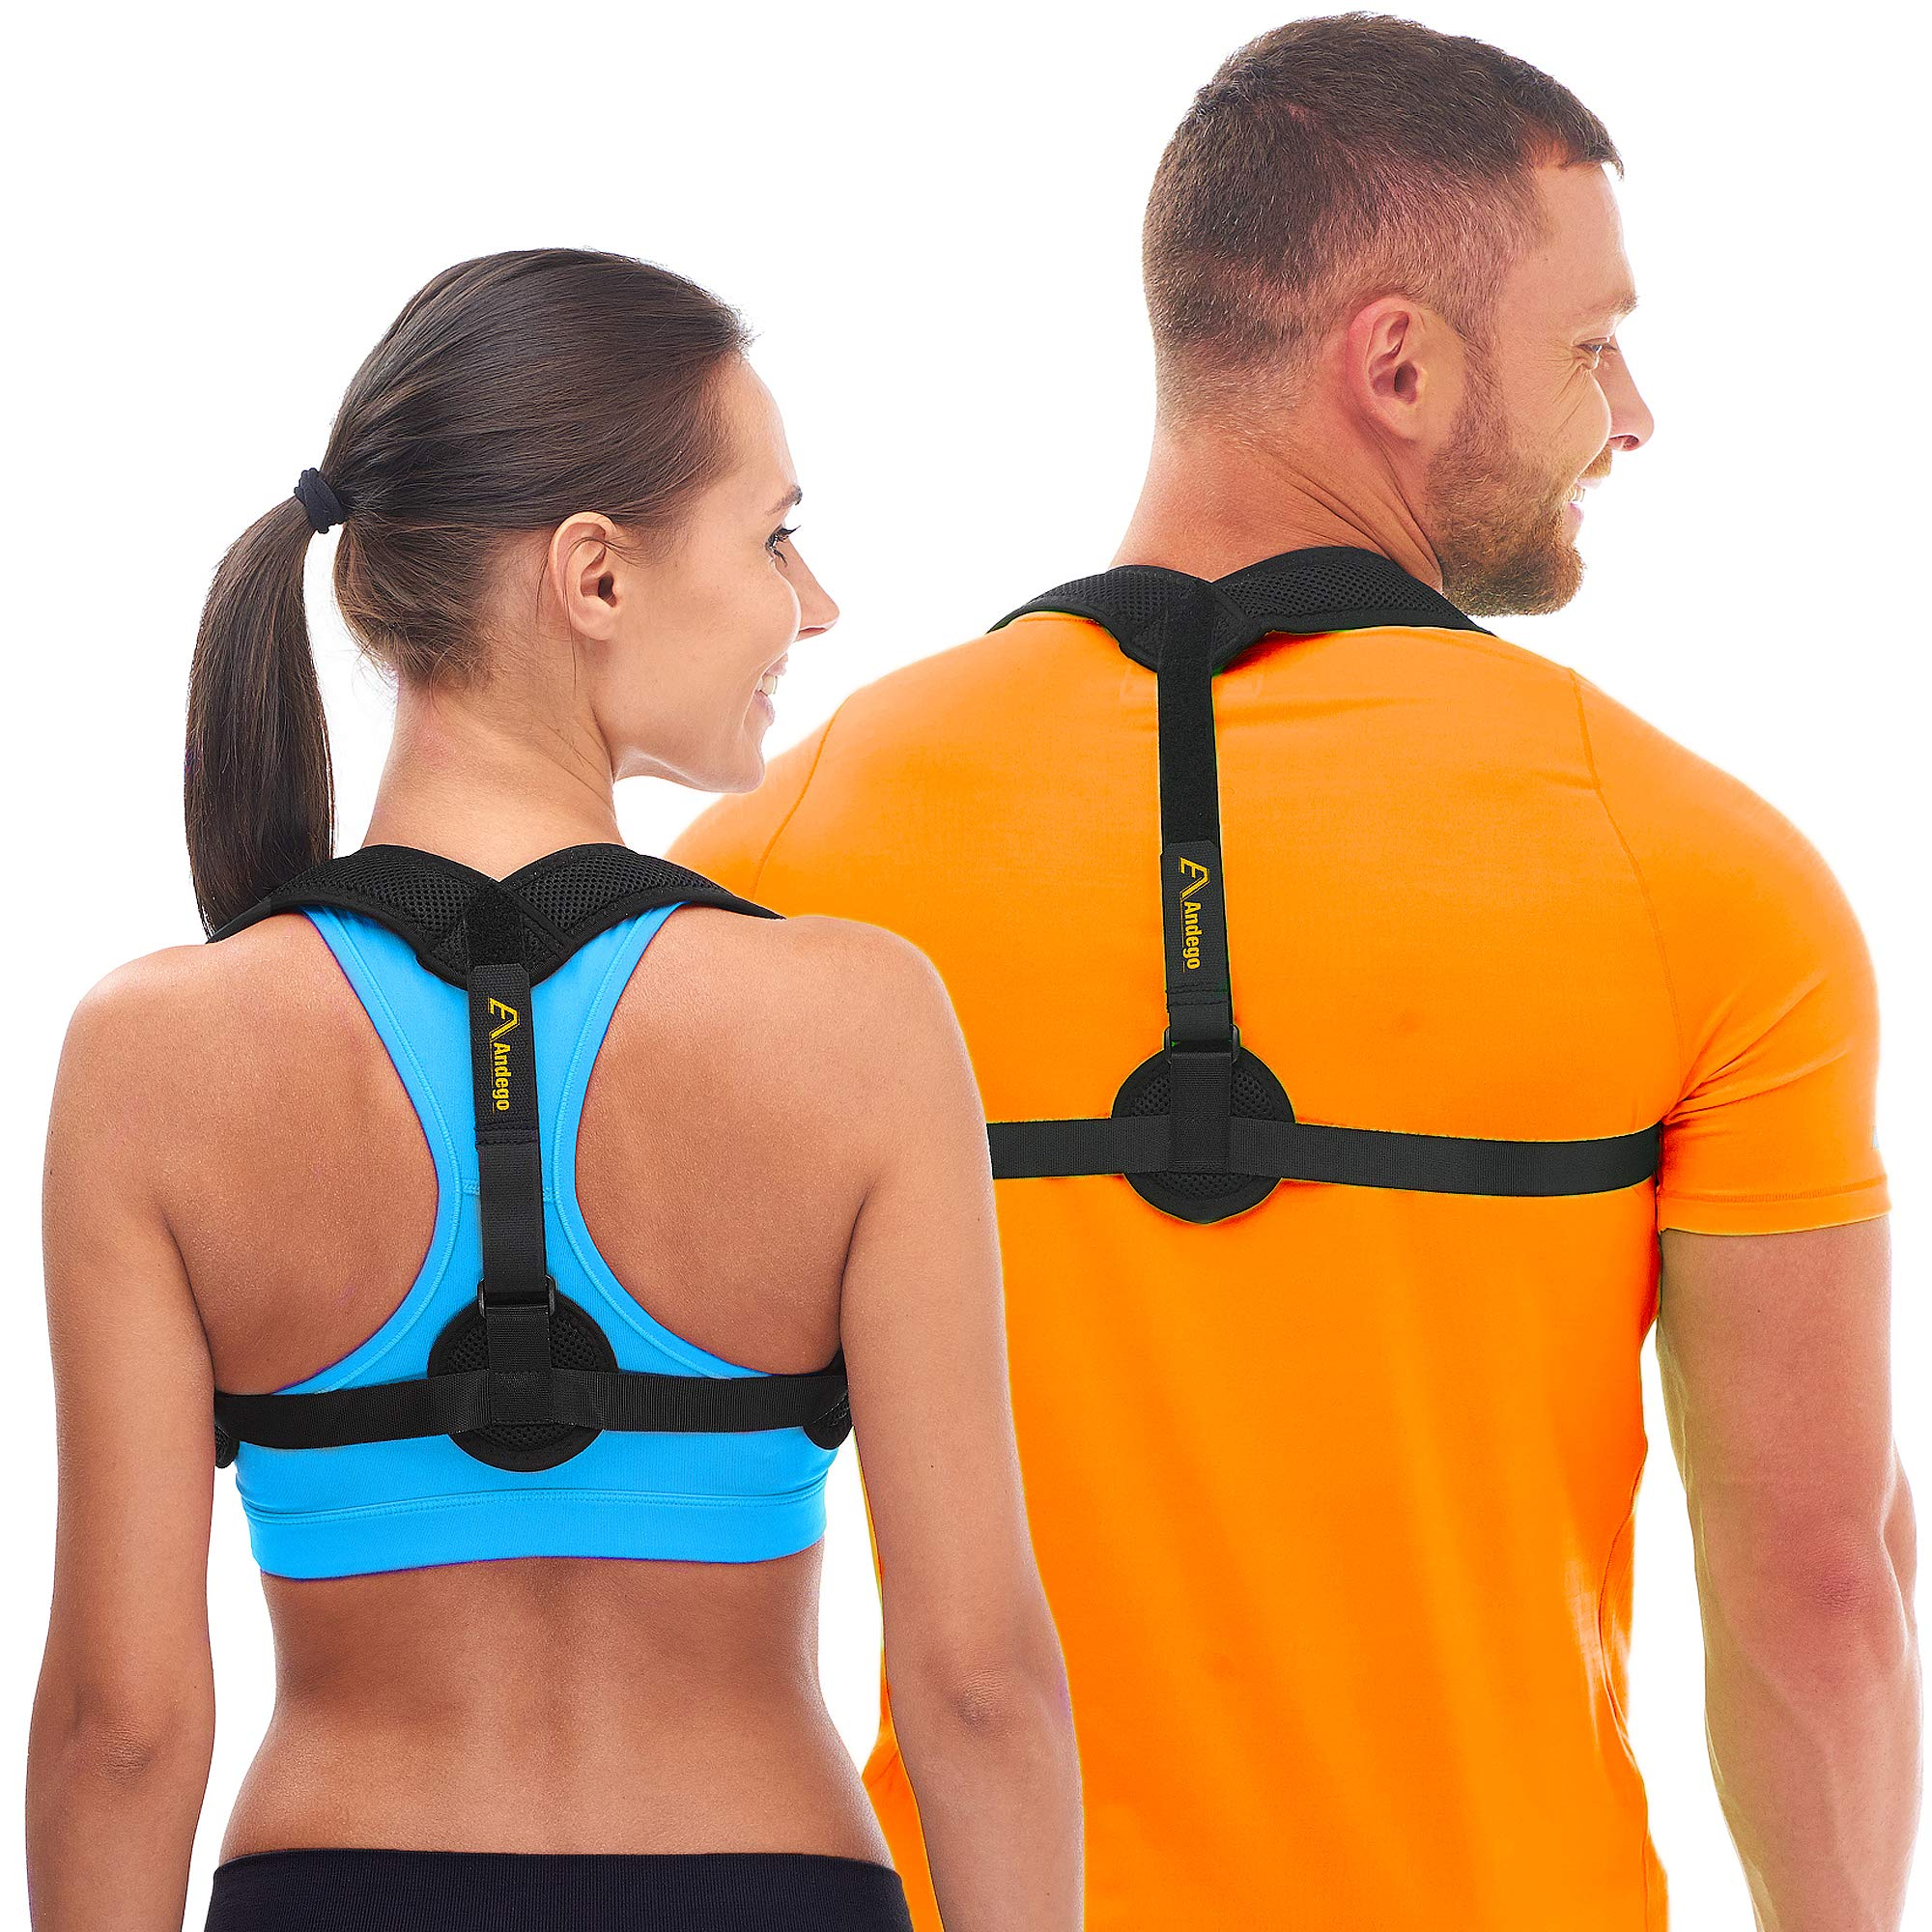 Andego Back Posture Corrector for Women & Men - Effective and Comfortable Posture Brace for Slouching